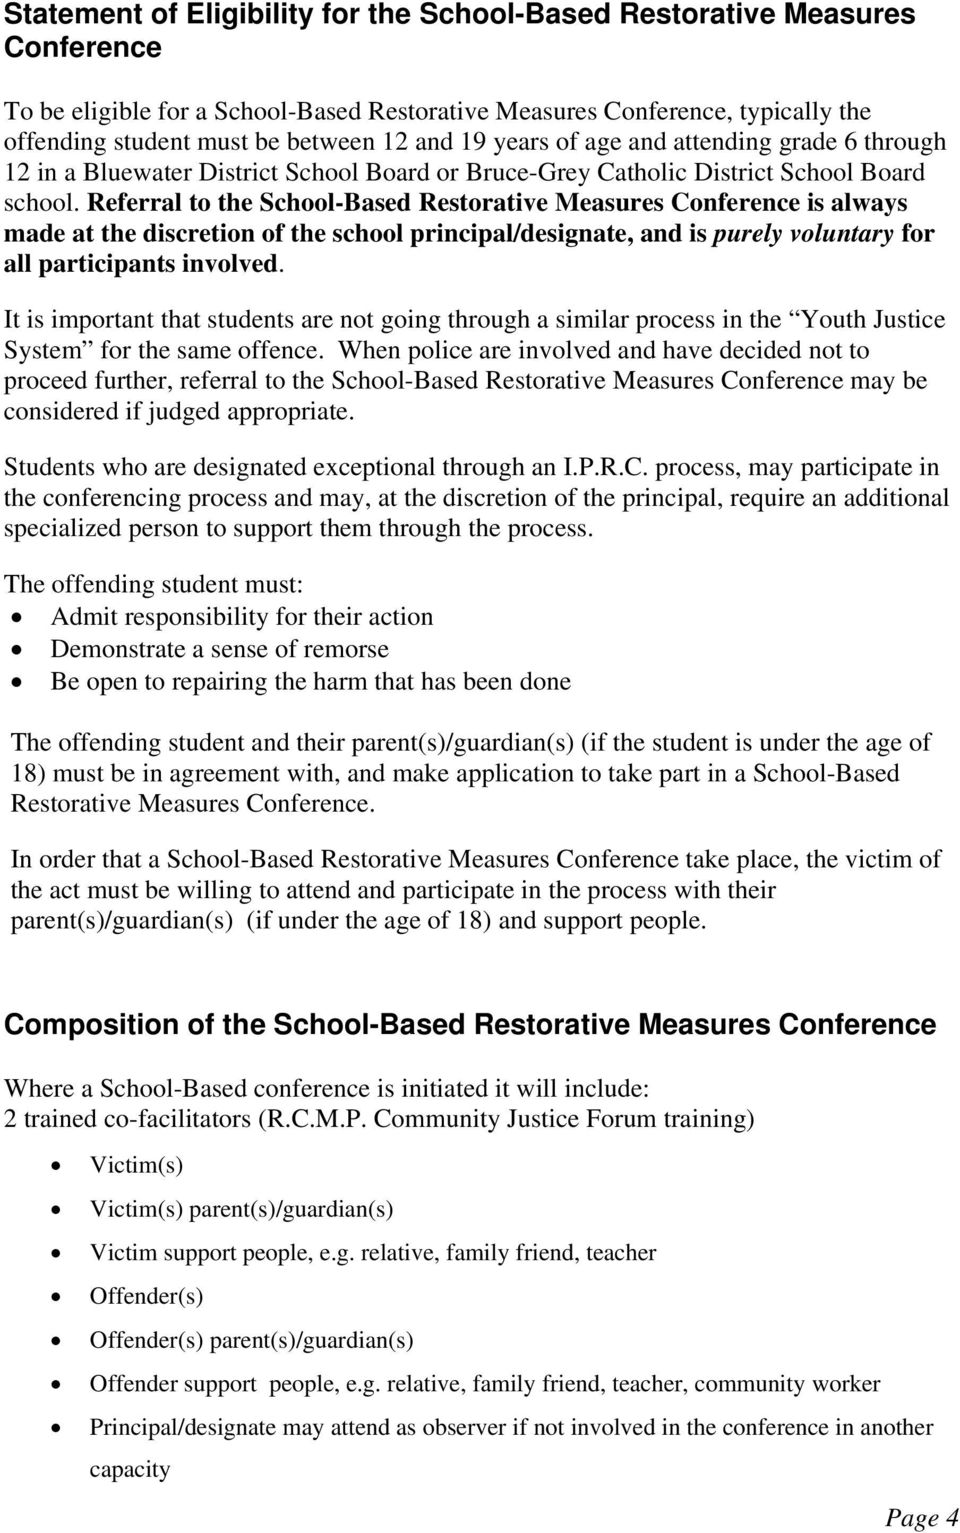 Referral to the School-Based Restorative Measures Conference is always made at the discretion of the school principal/designate, and is purely voluntary for all participants involved.